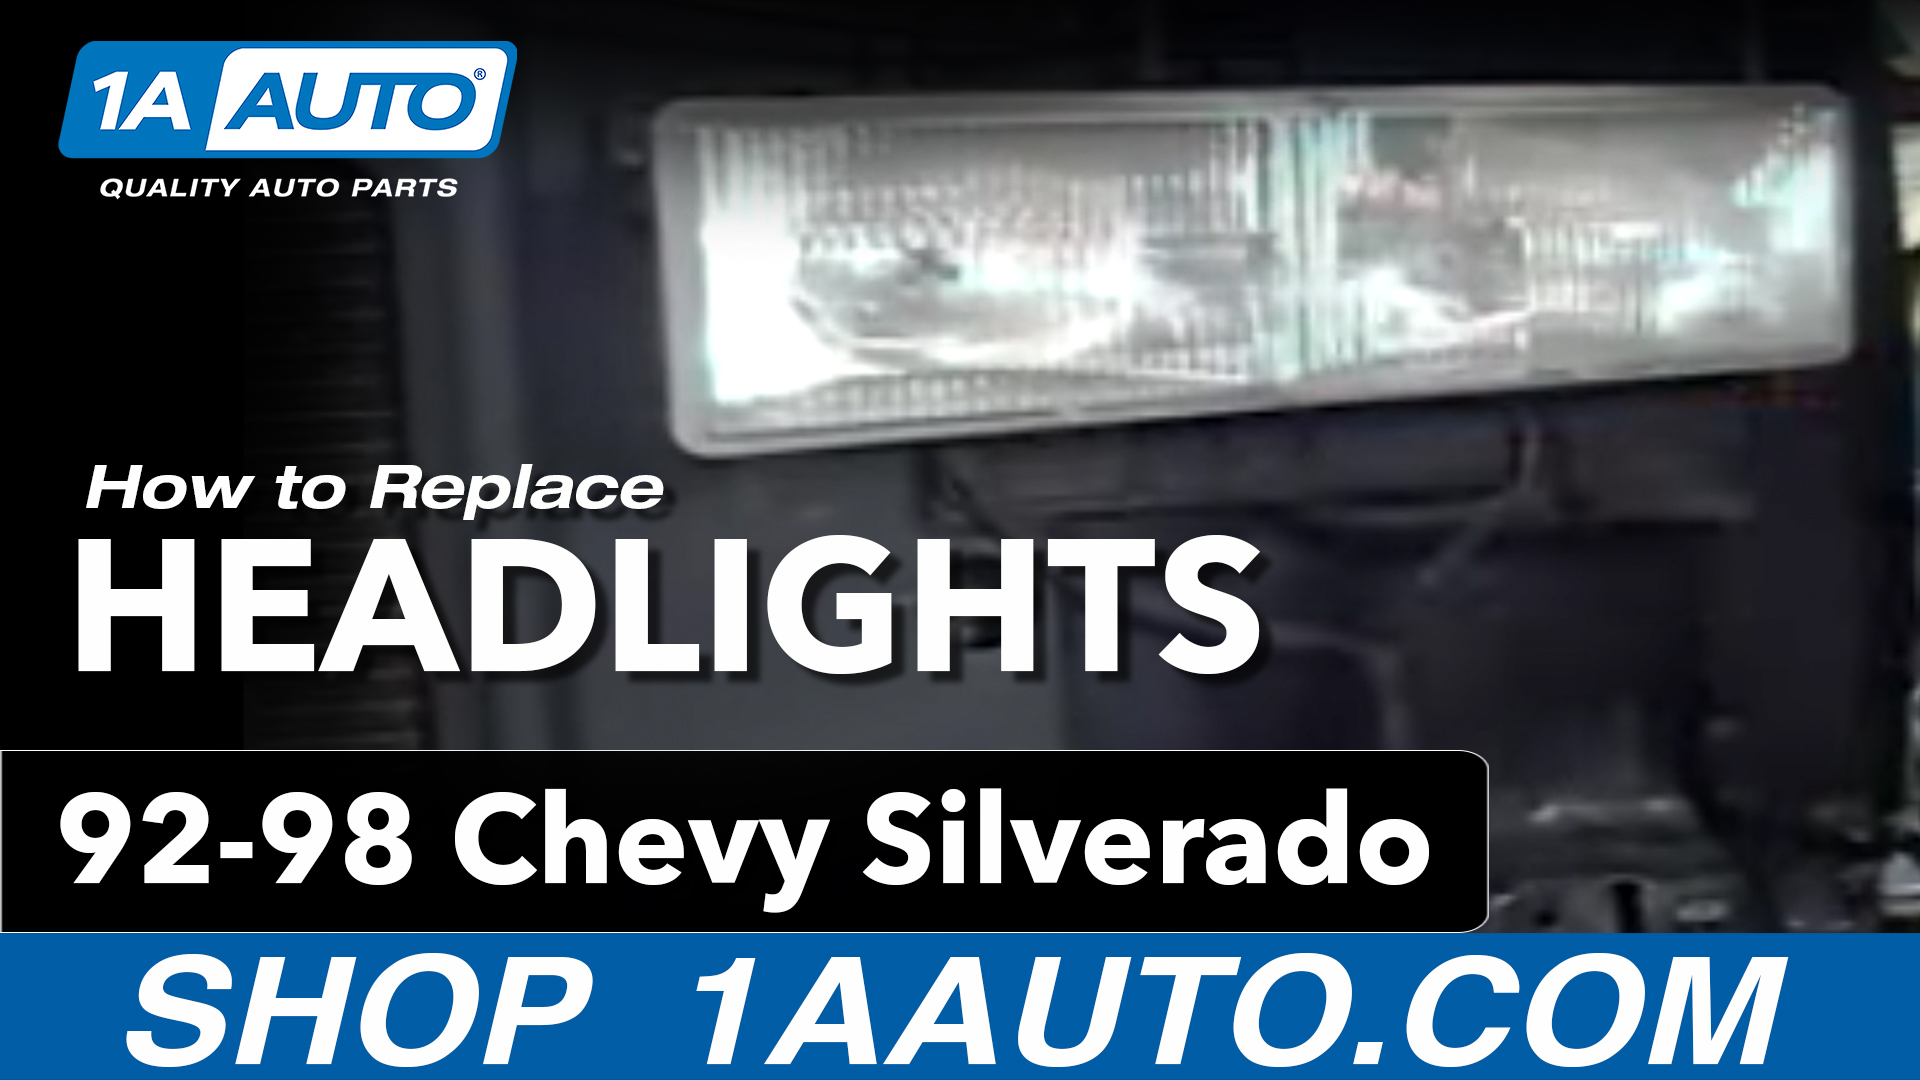 How To Replace Headlights 92-99 Chevy Suburban